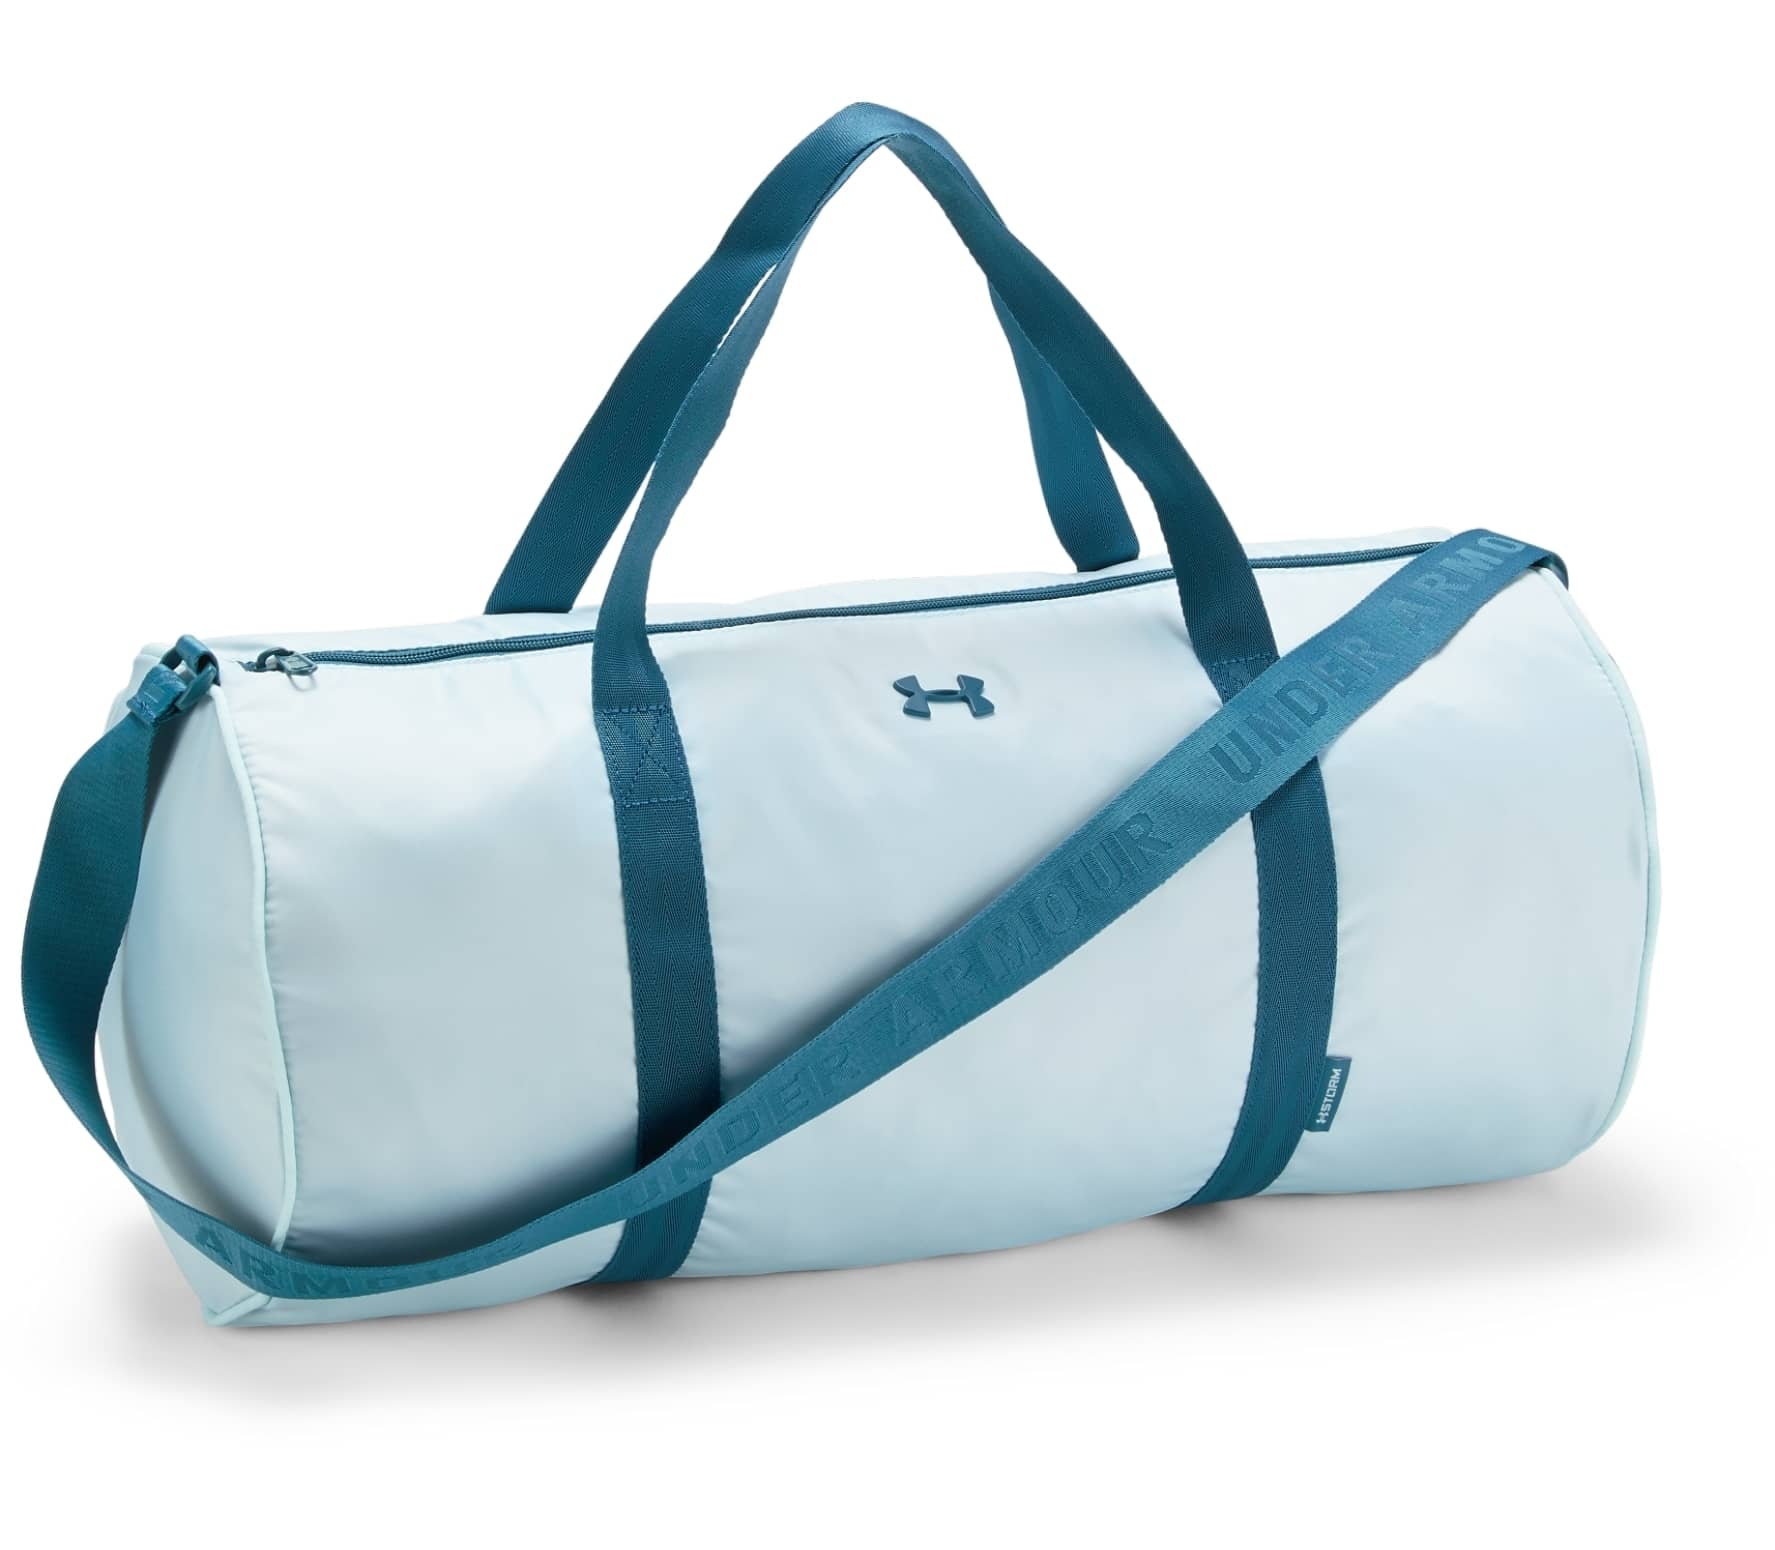 Under Armour - UA Favorite duffel bag 2.0 women's training duffel bag bag (light blue/blue)